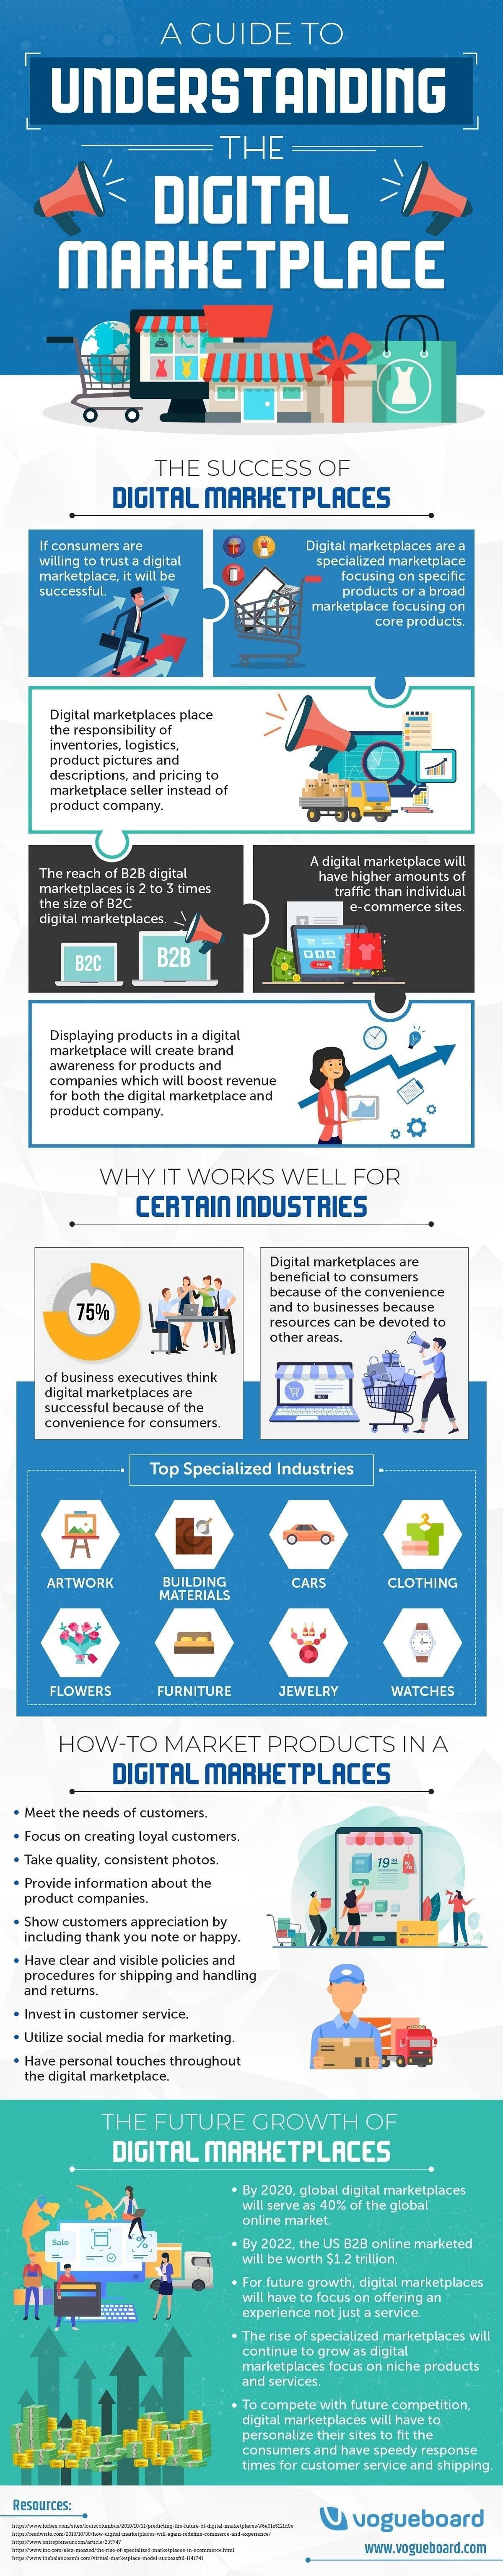 A Guide to Understanding the Digital Marketplace #infographic